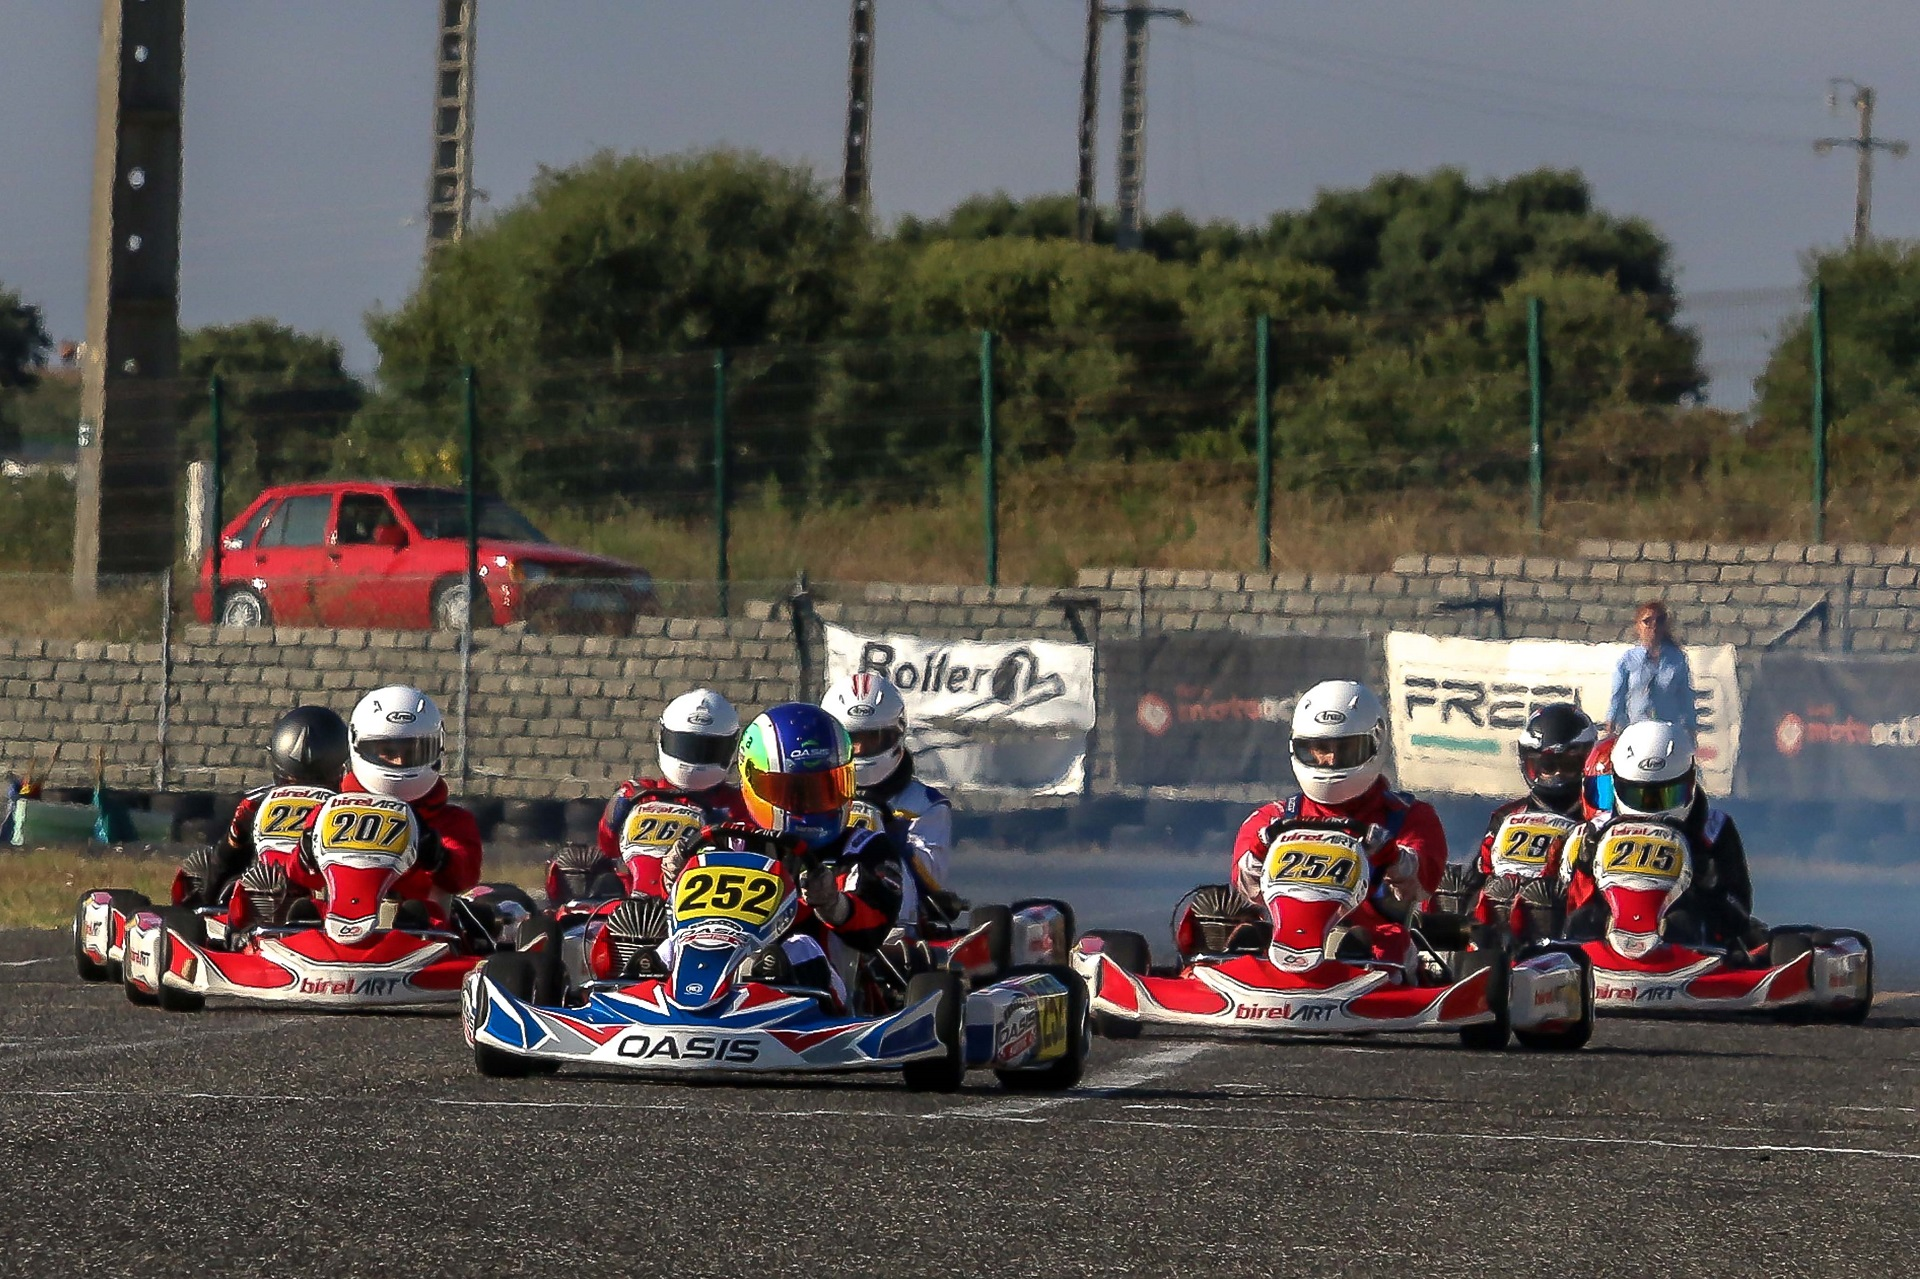 Duarte Monte triunfa no arranque do Trofeu EasyKart Portugal na categoria EK 125